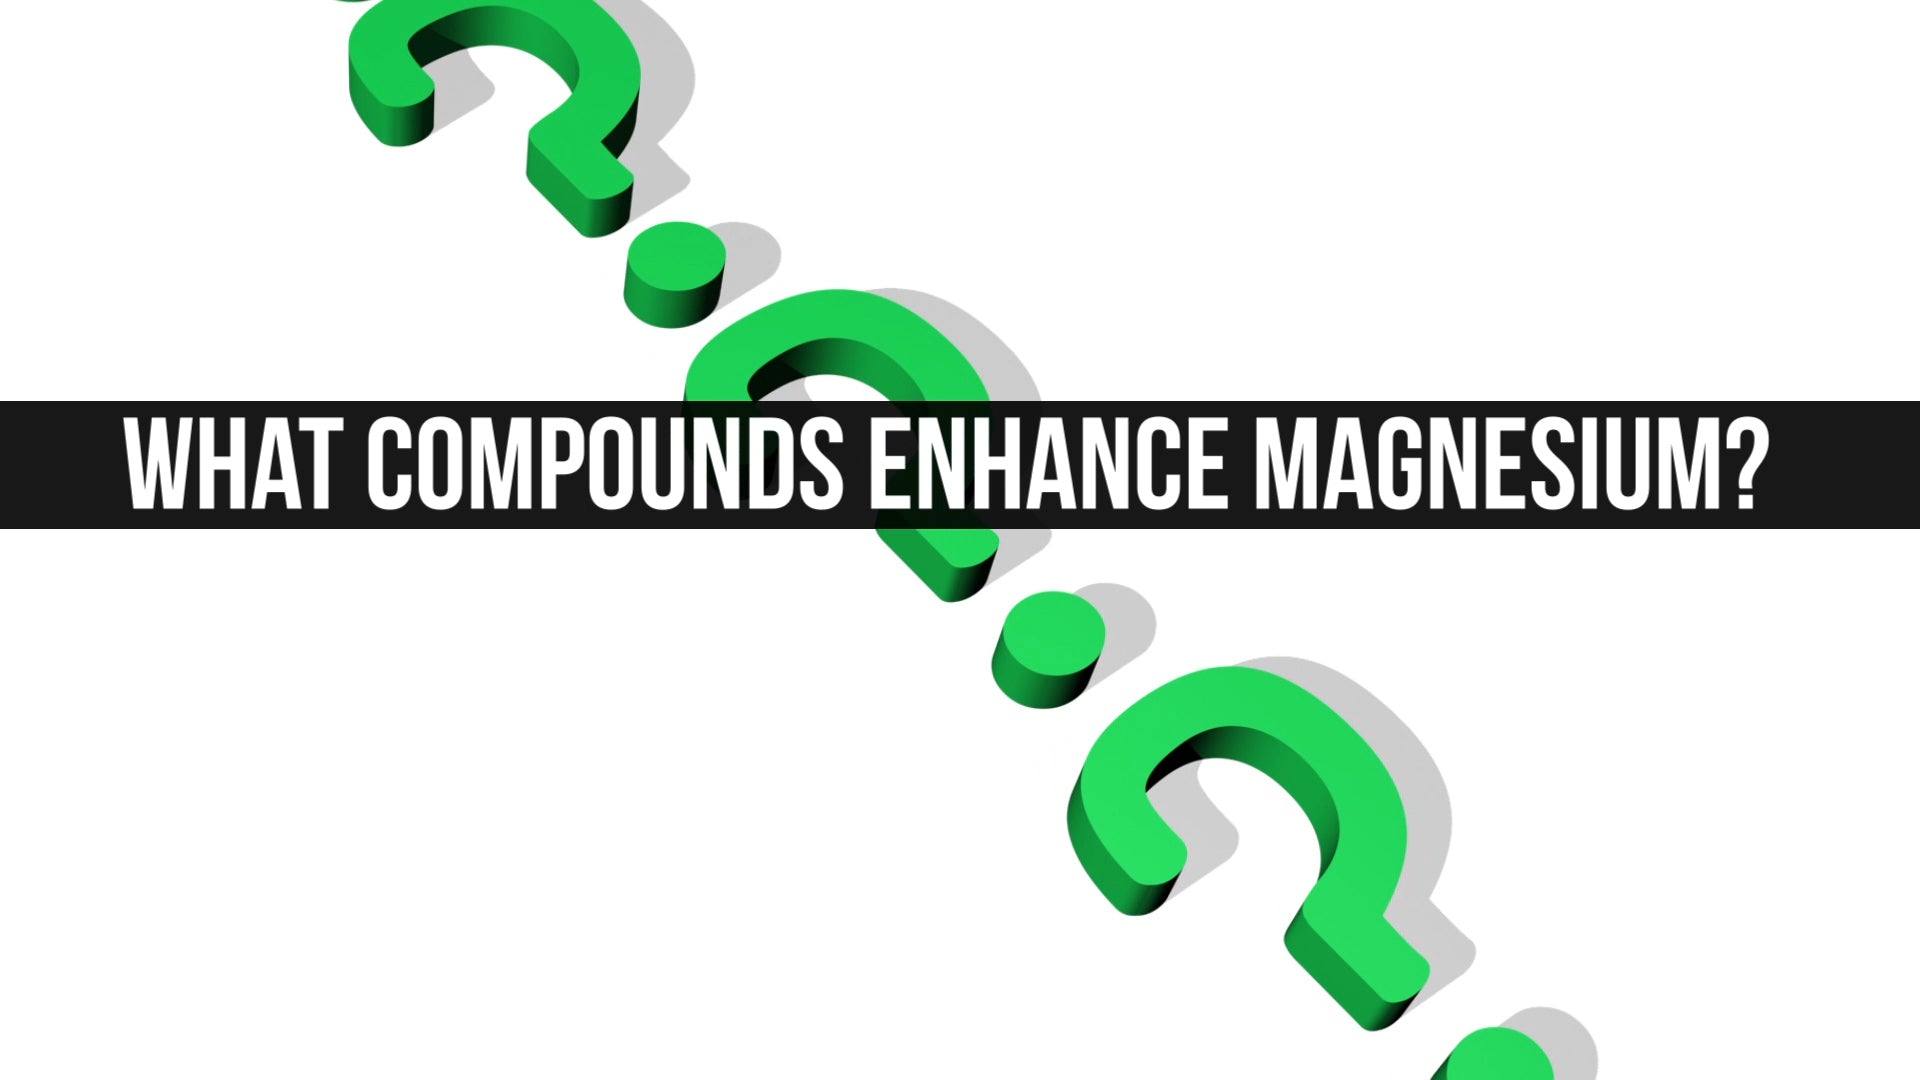 What Compounds Enhance Magnesium?